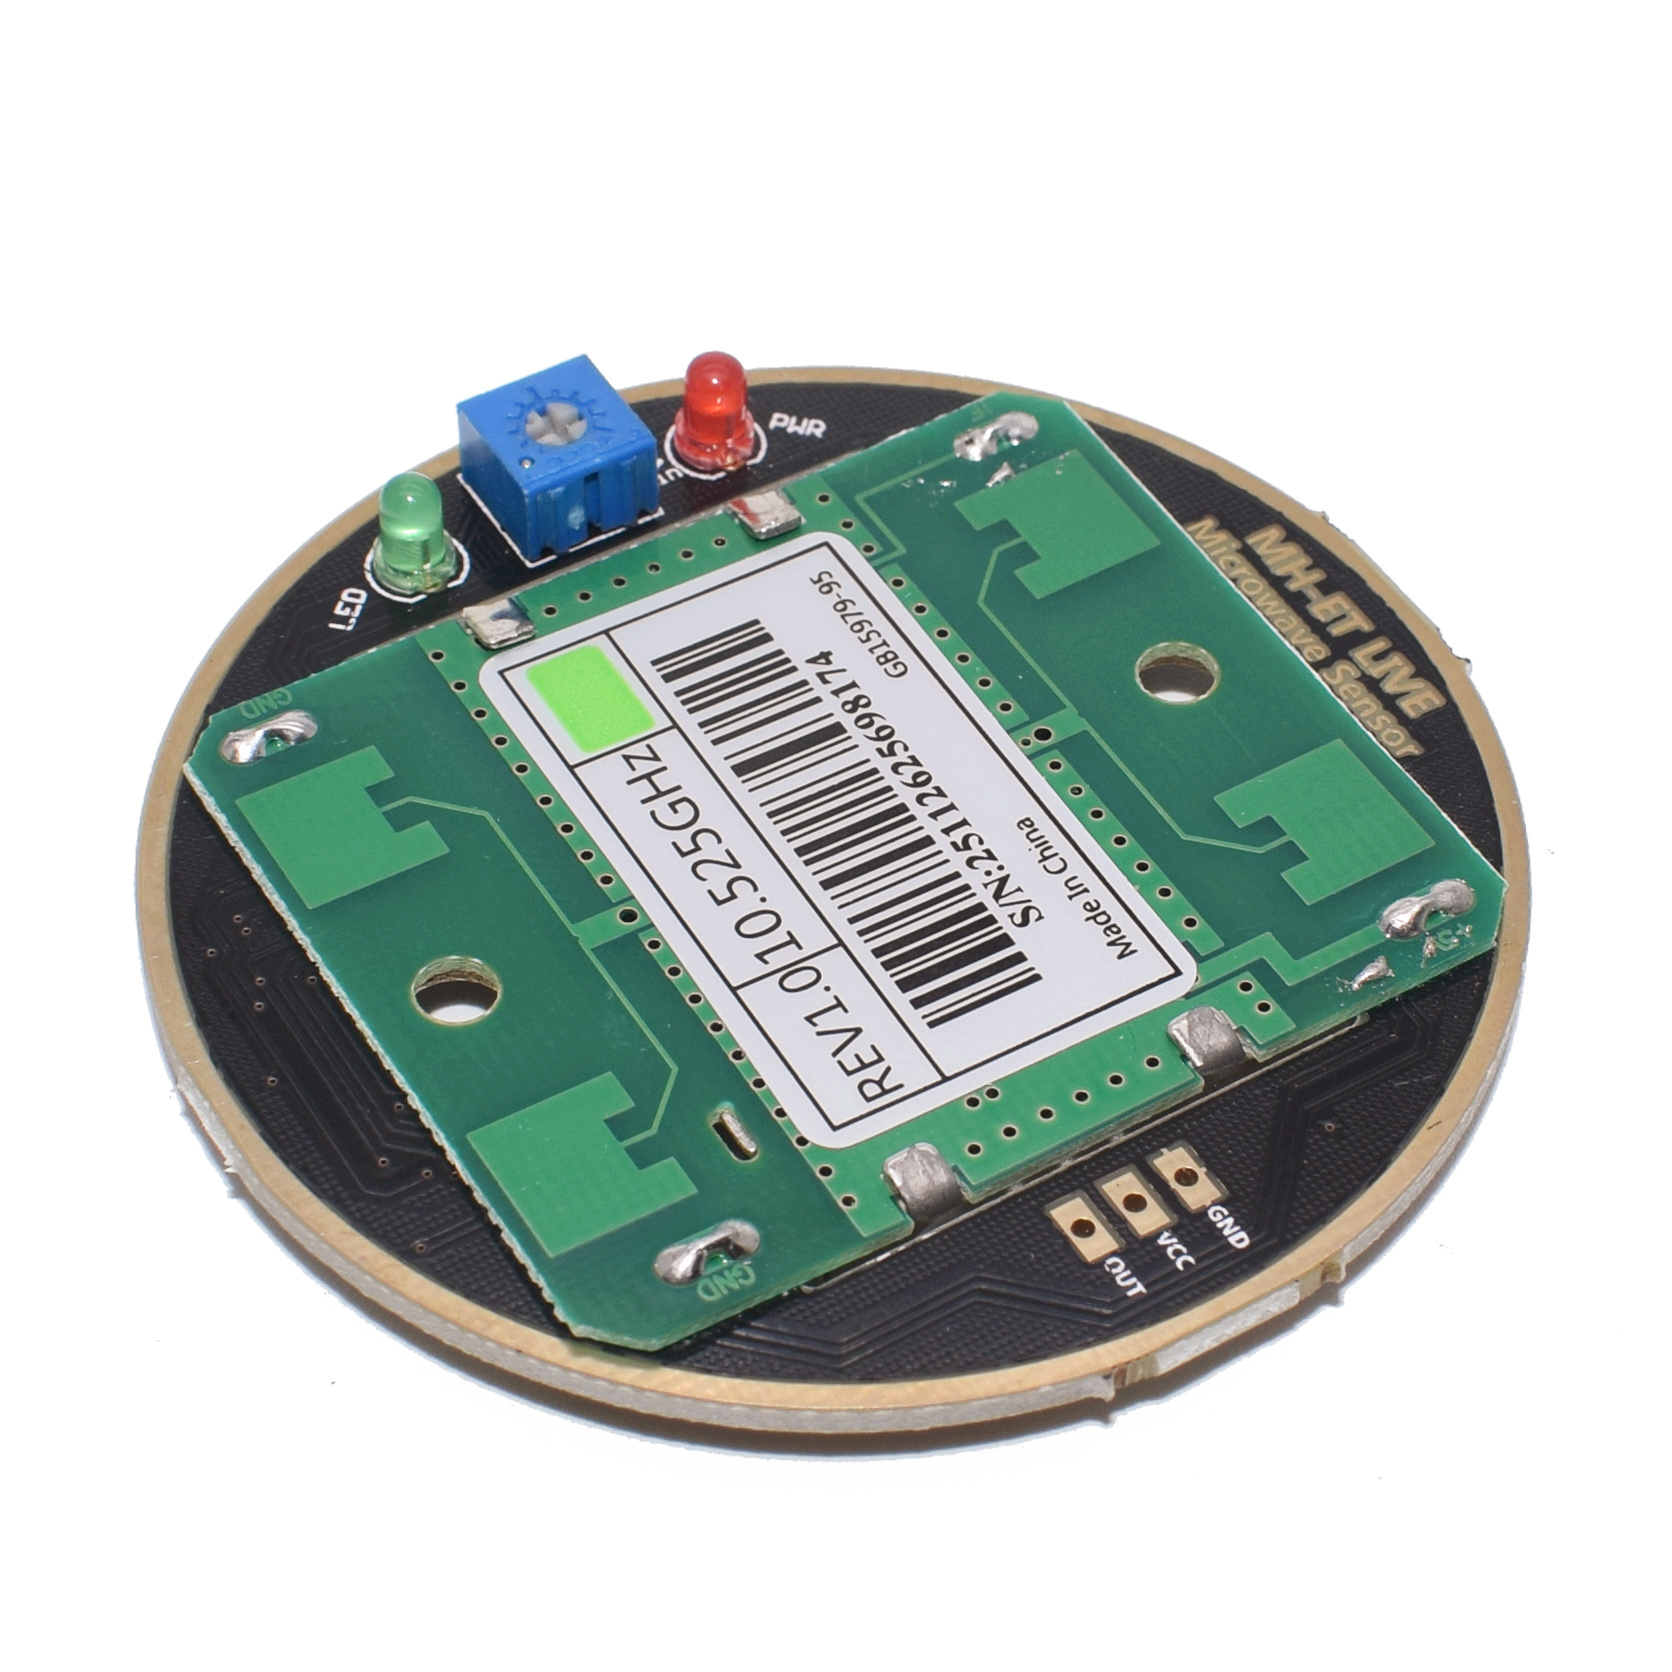 Image 2 - 10PCS MH ET LIVE HB100 X 10.525GHz Microwave Sensor 2 16M Doppler Radar Human Body Induction Switch Module For ardunio-in Sensors from Electronic Components & Supplies